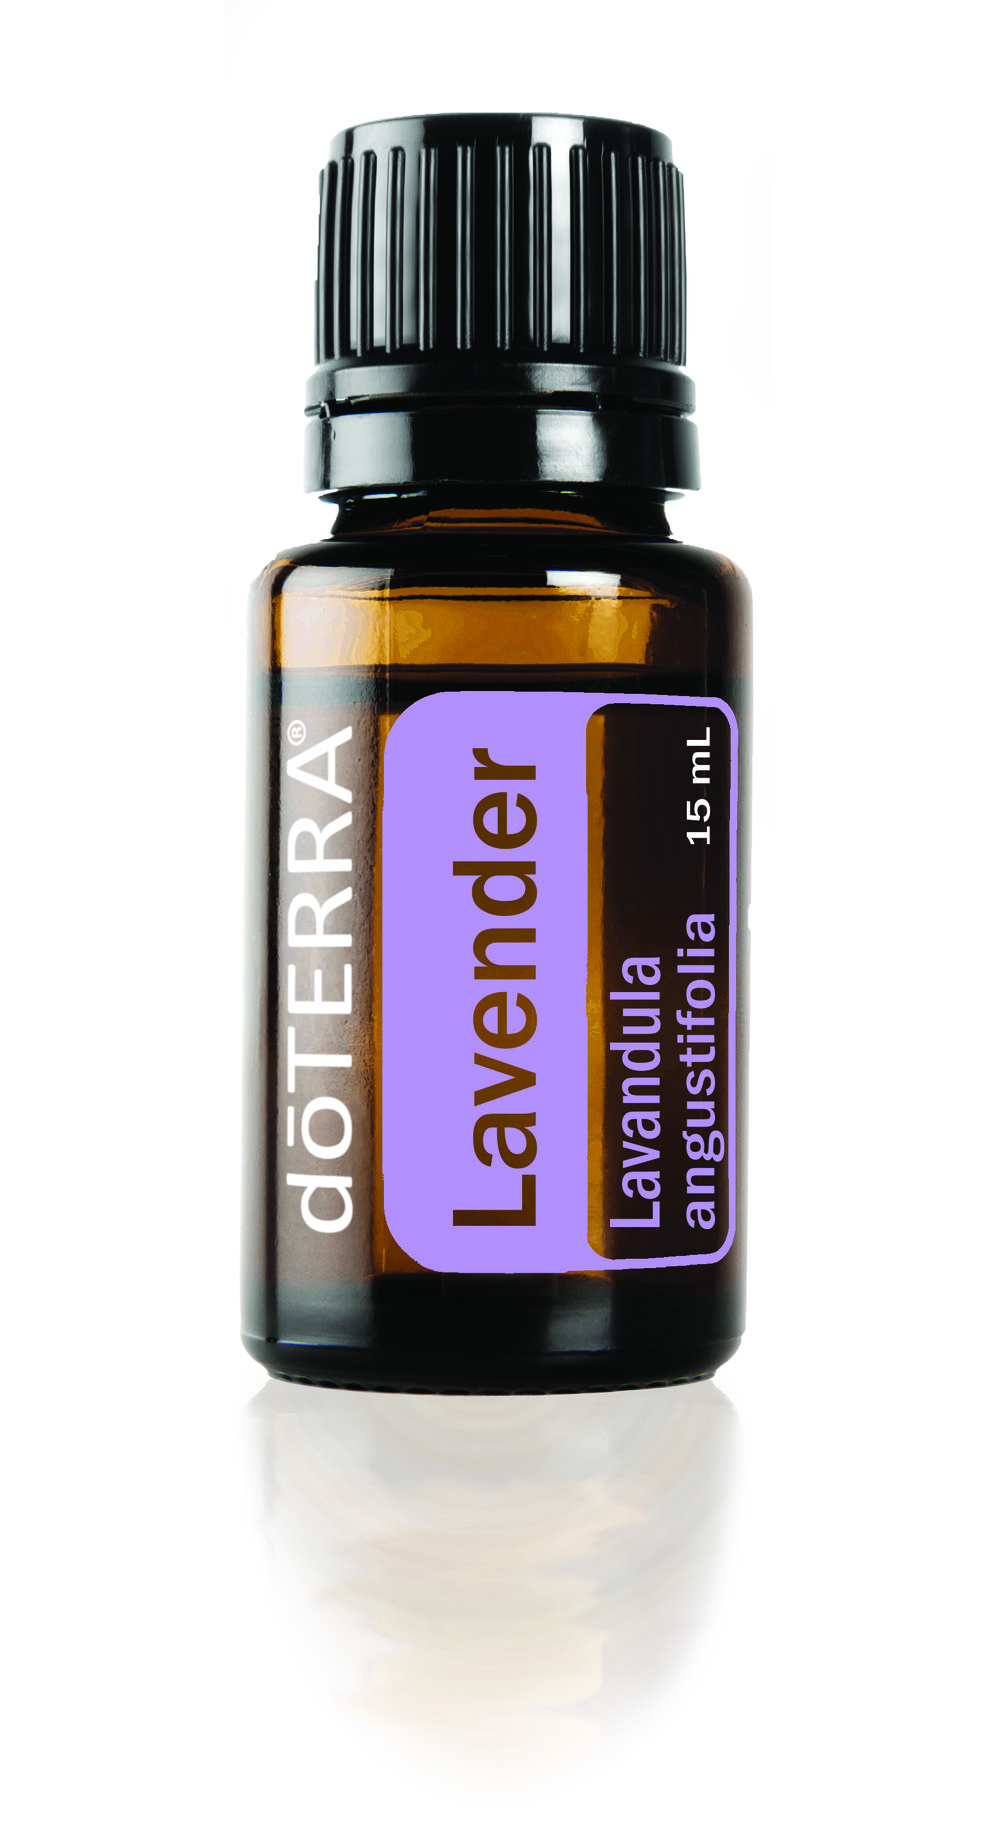 Lavender Essential Oil - Lavender Essential Oil has calming and relaxing properties that promote peaceful sleep and ease feelings of tension. Lavender has a light, floral scent that can soothe your skin and your mind.*